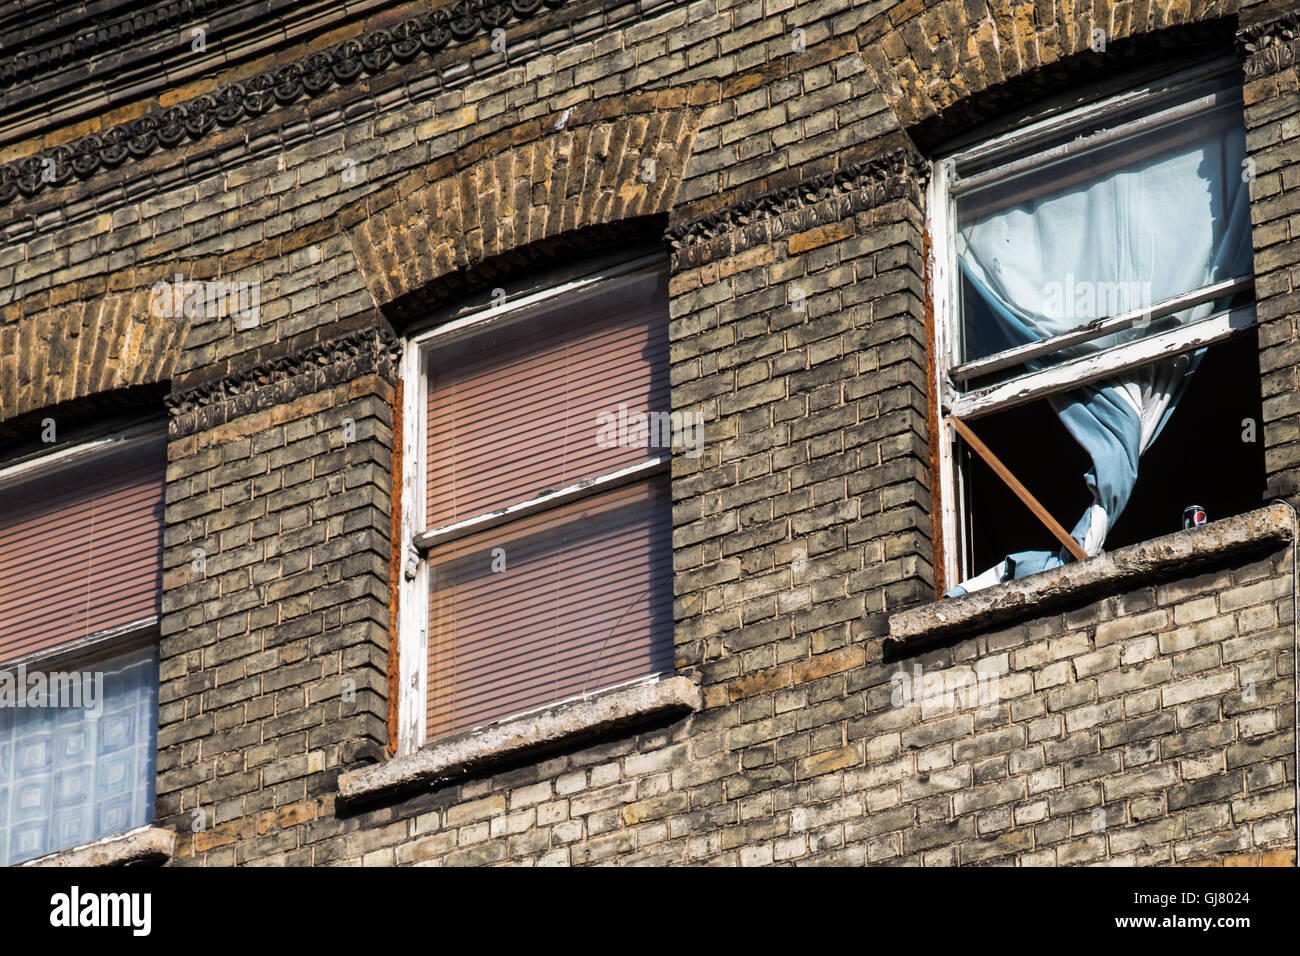 Row of Victorian Hatch Windows, London.  One window is wedged open with a piece of wood. - Stock Image